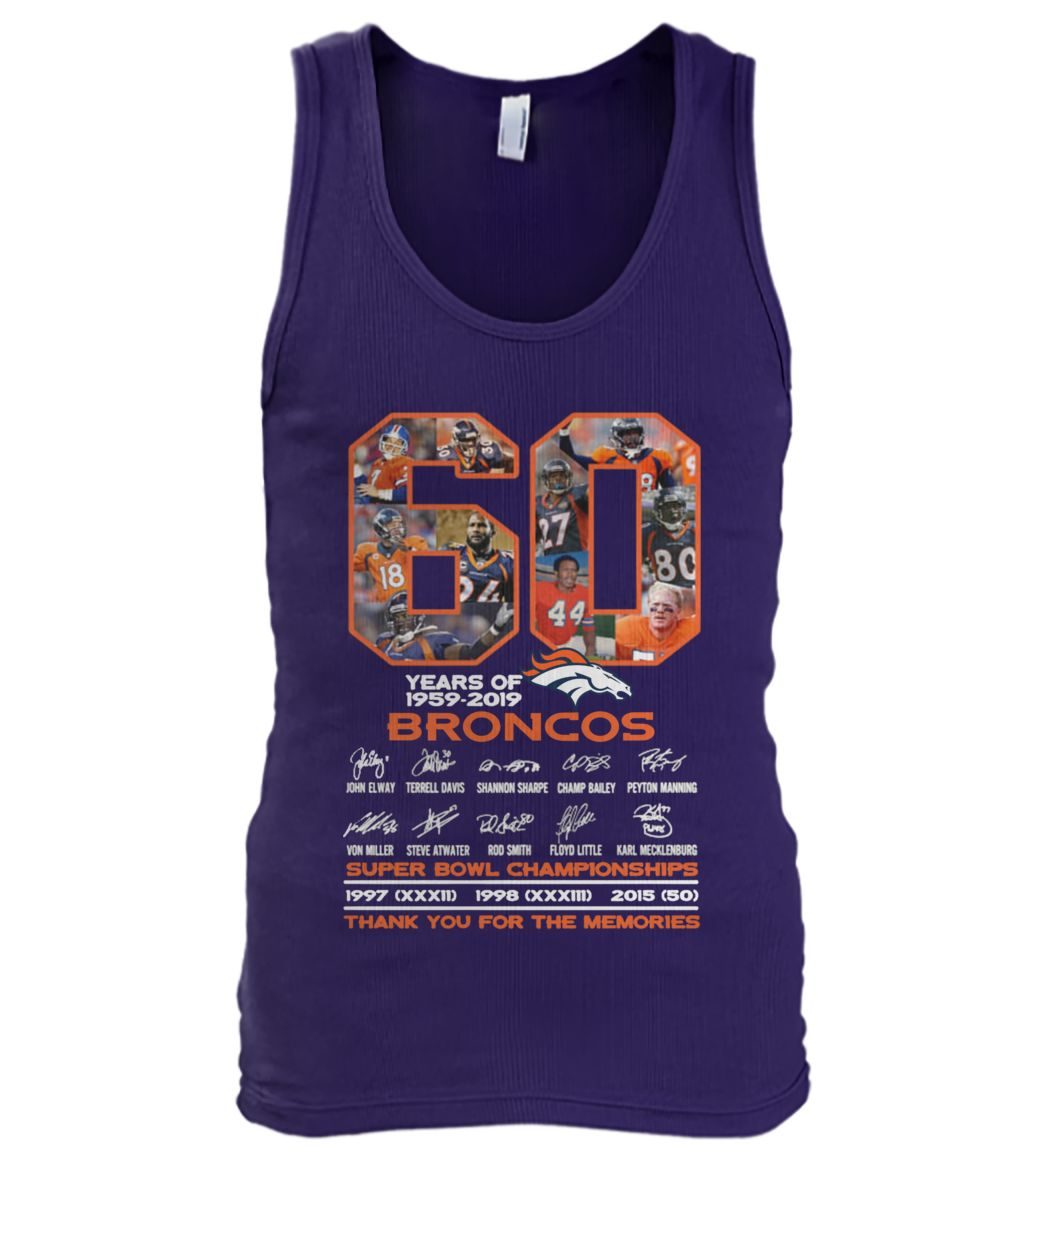 60 years of 1959-2019 broncos super bowl championships thank you for memories signatures men's tank top